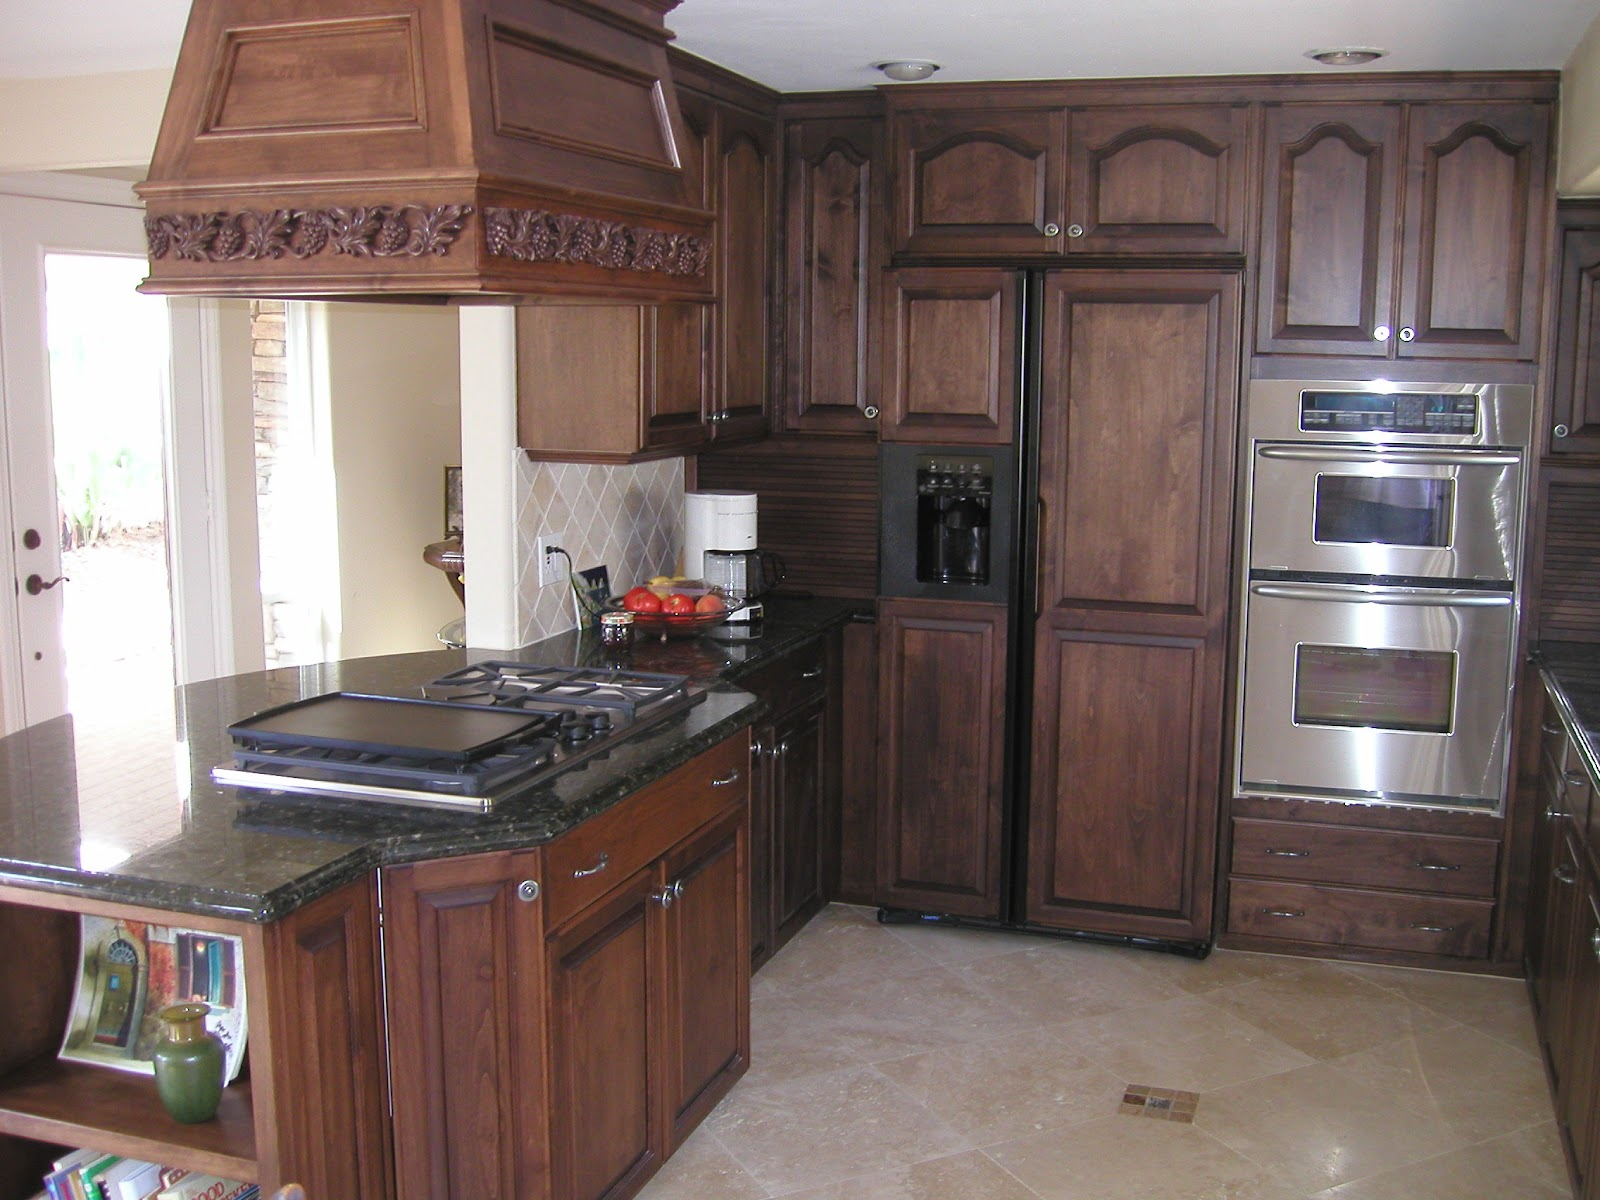 Design In Wood What To Do With Oak Cabinets: HOME DESIGN IDEAS: Oak Kitchen Cabinets Design Ideas